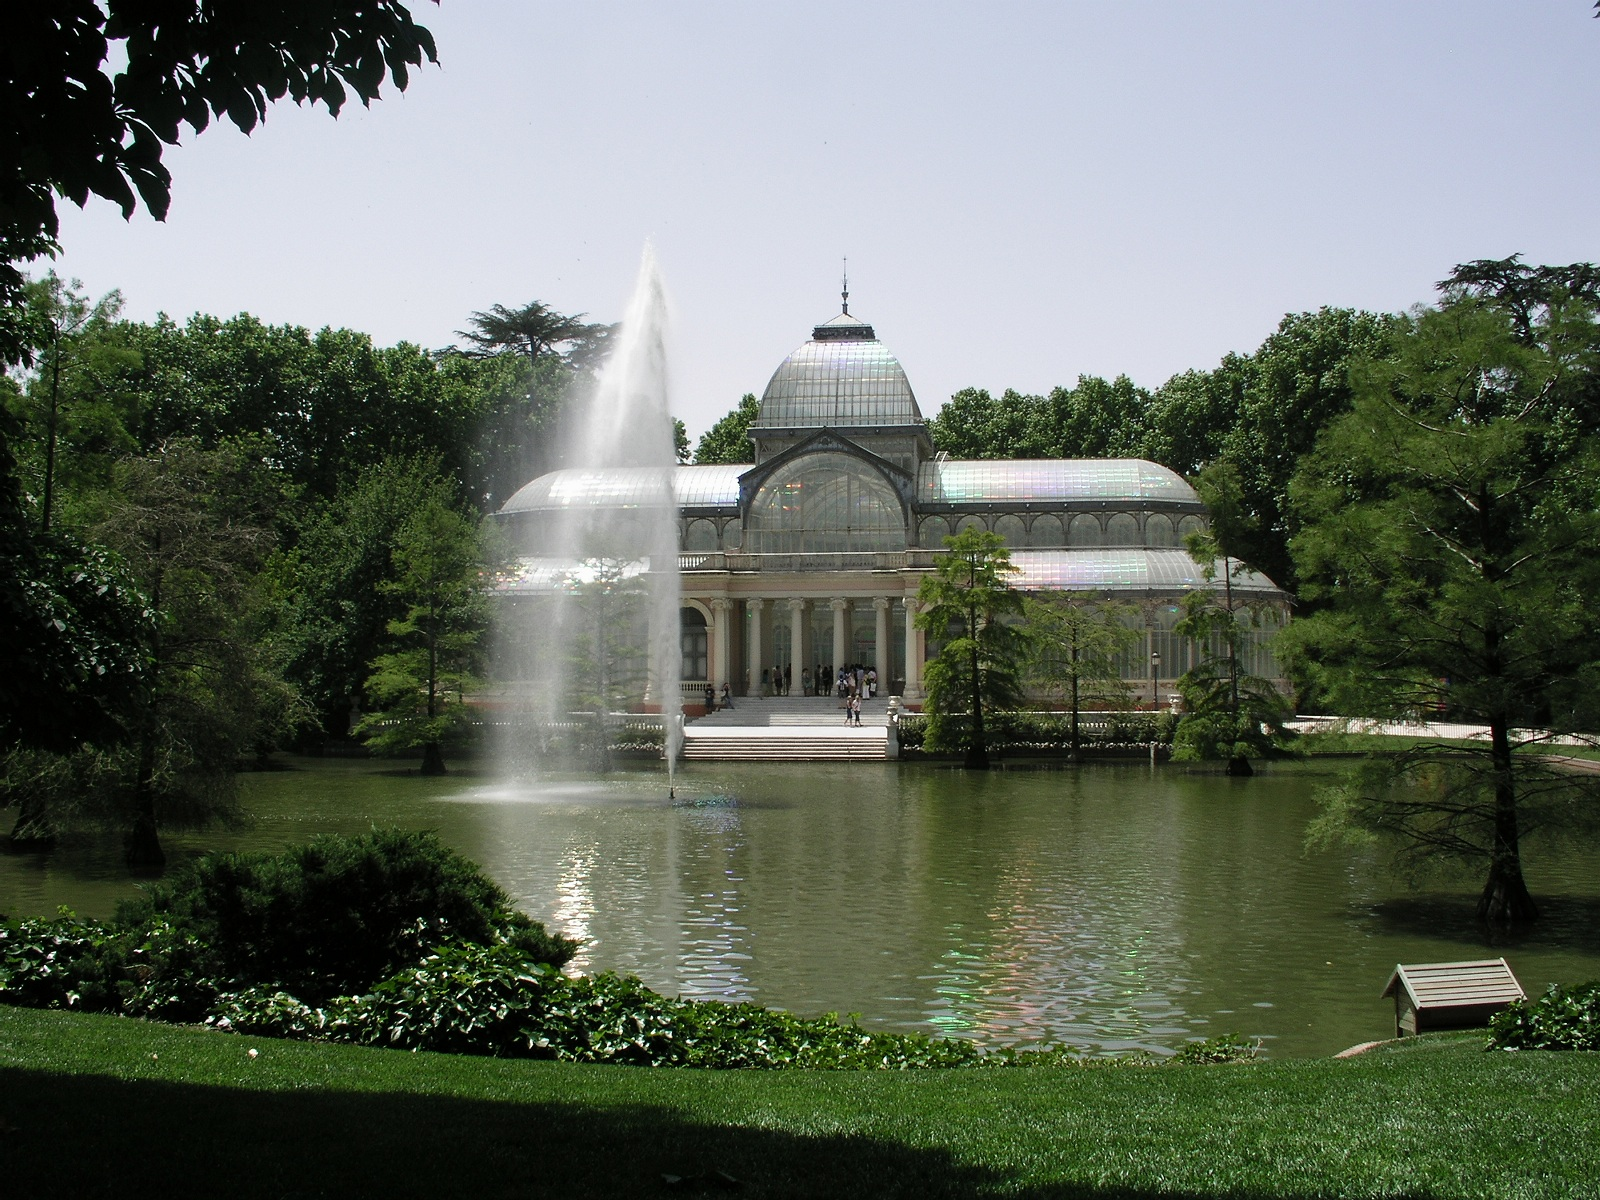 Free attractions holiday, Madrid, Spain, El Parque del Buen Retiro overview